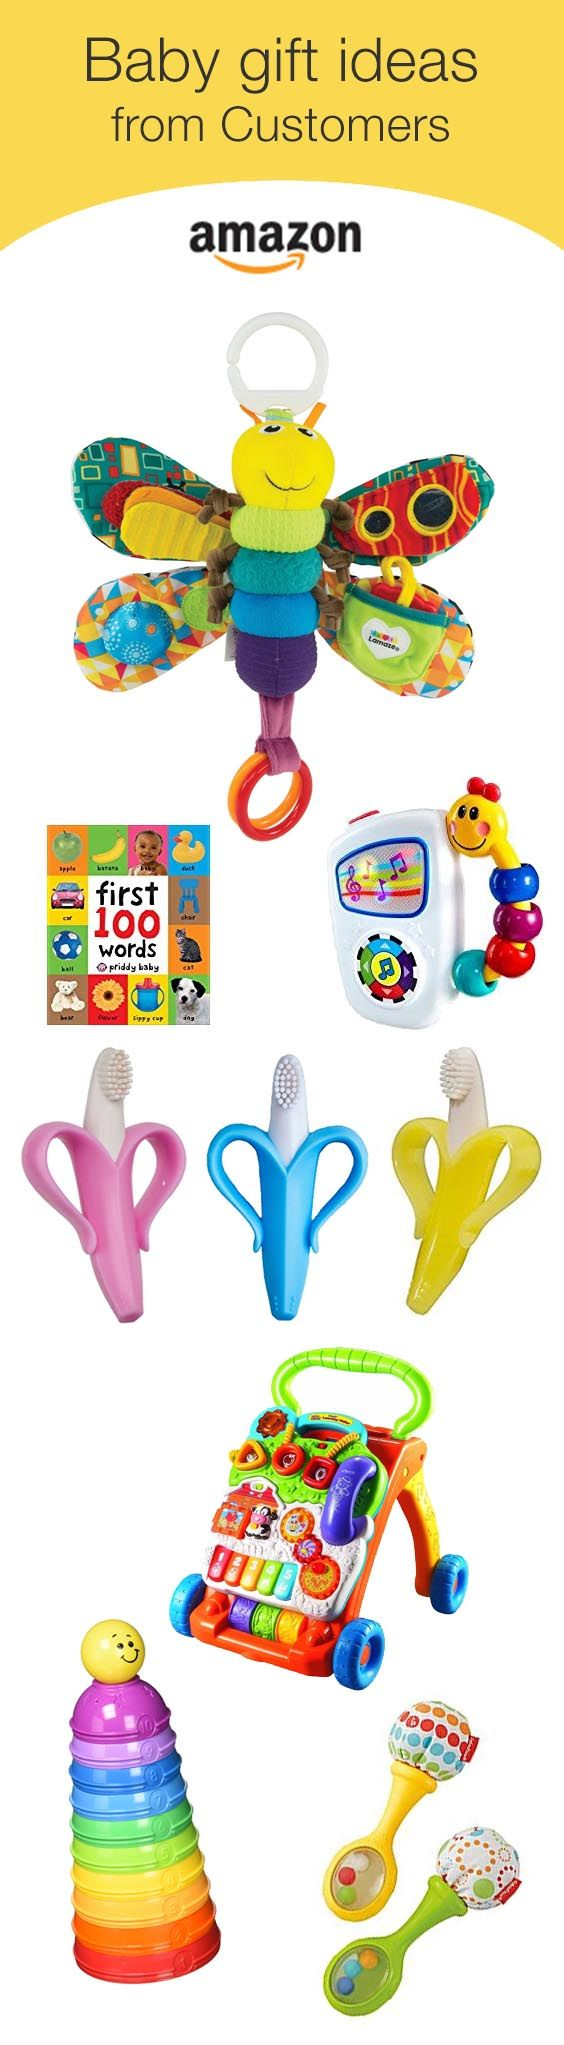 189 best for the baby images on pinterest baby products baby get real real recommendations from real parents that is real realbaby hackseaster basketsgift negle Gallery